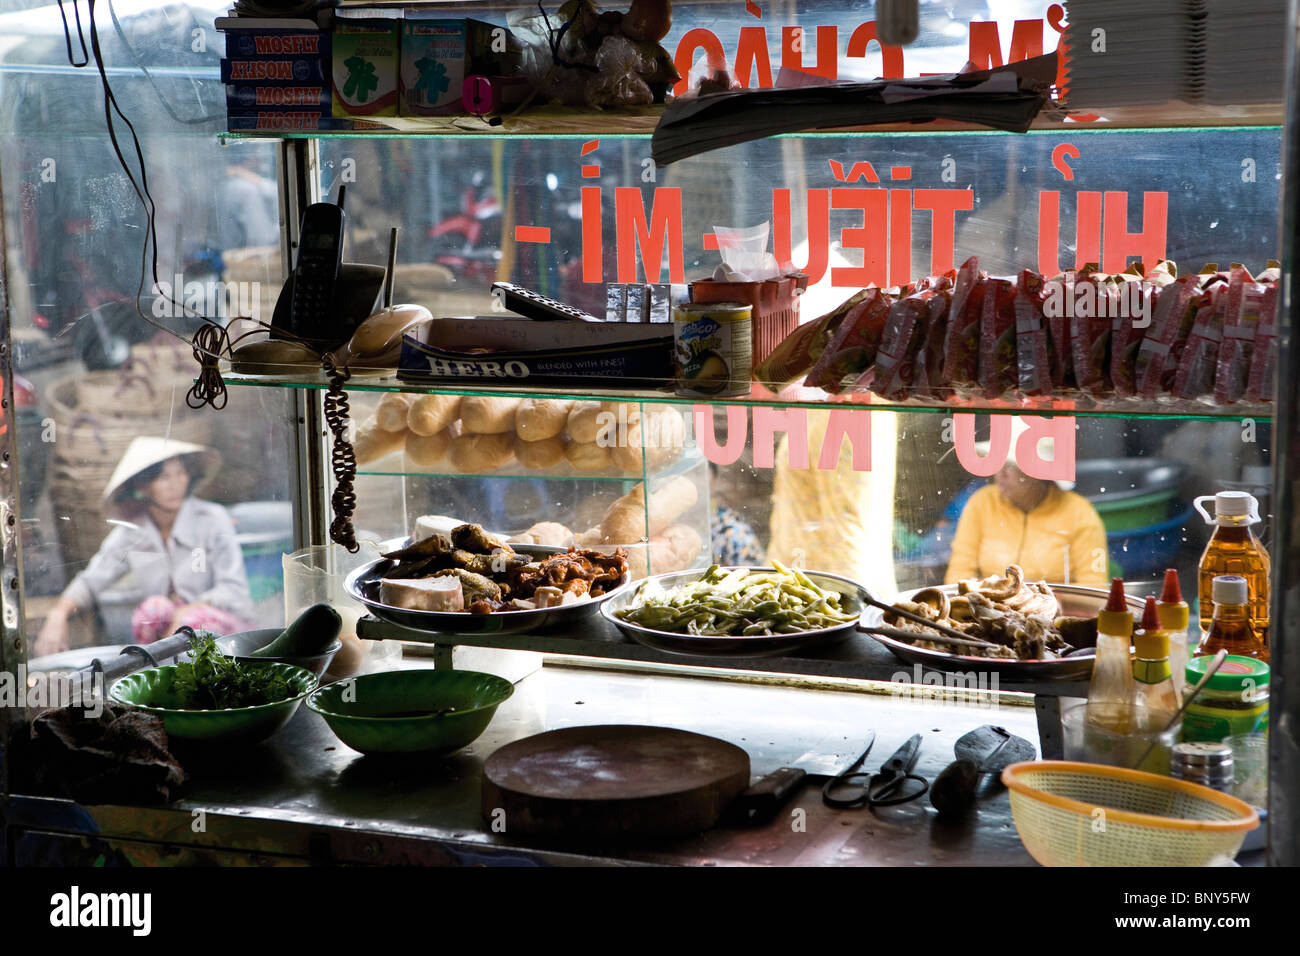 Restaurant kitchen in Cai Rang quarter of Can Tho city, Vietnam - Stock Image